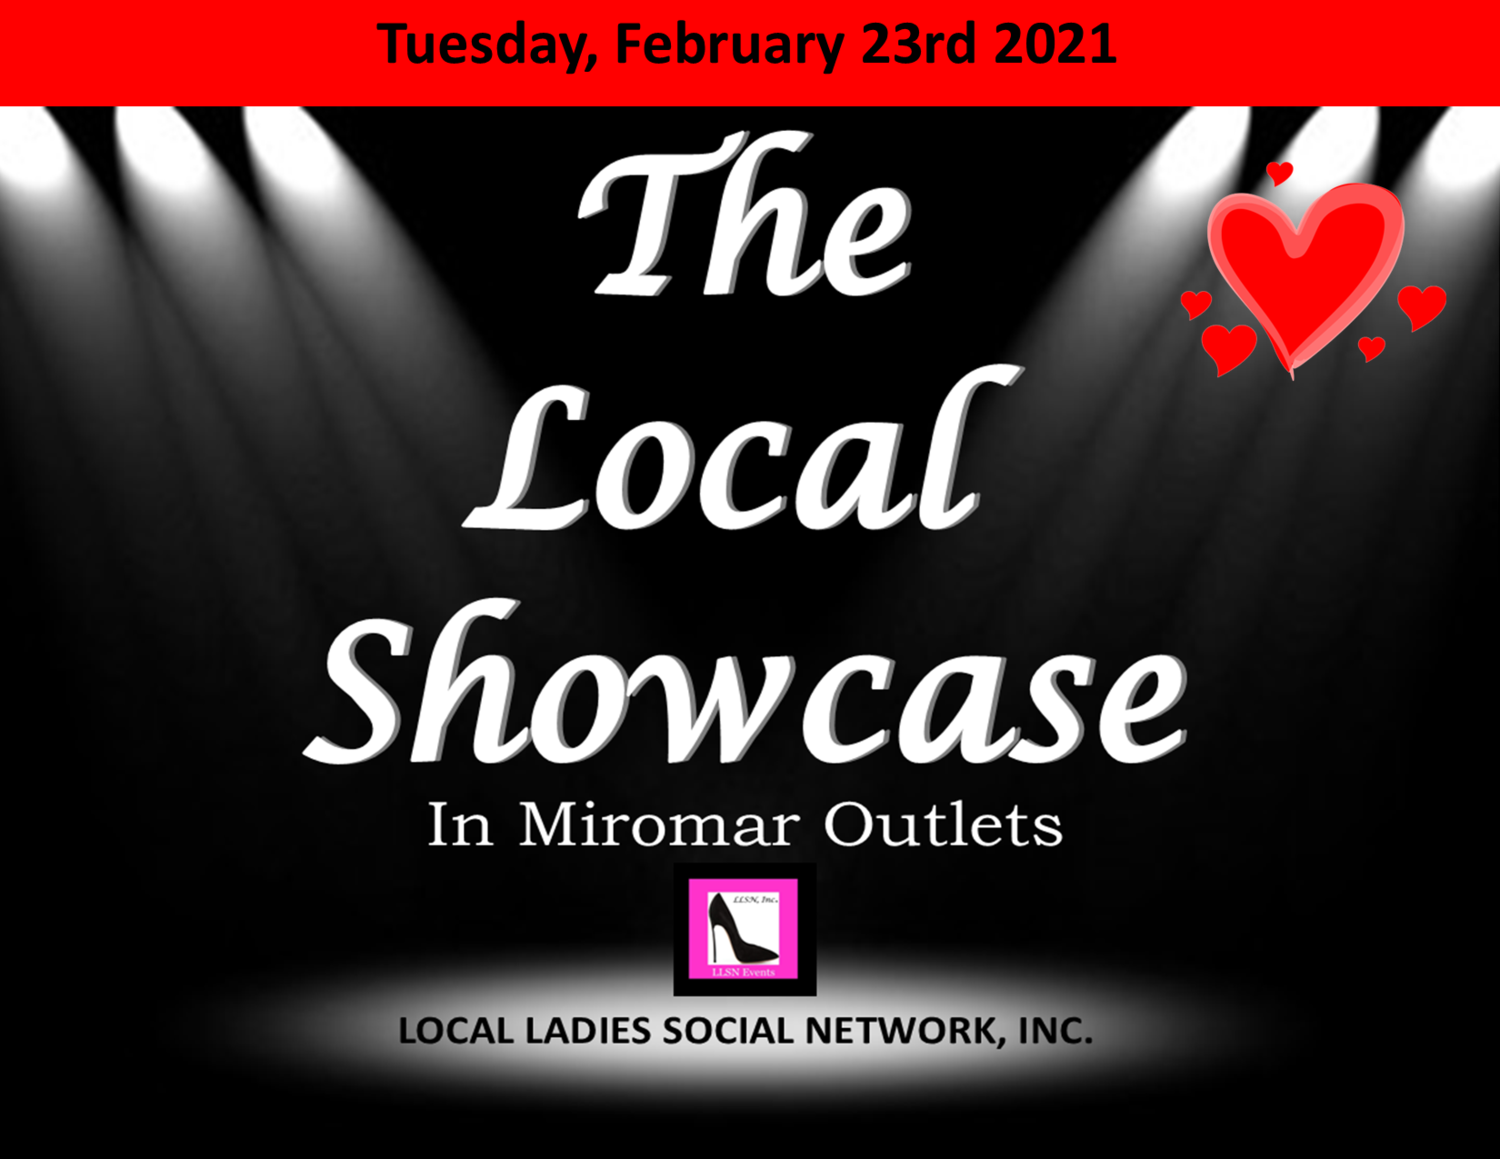 Tuesday, February 23rd 11am-7pm.